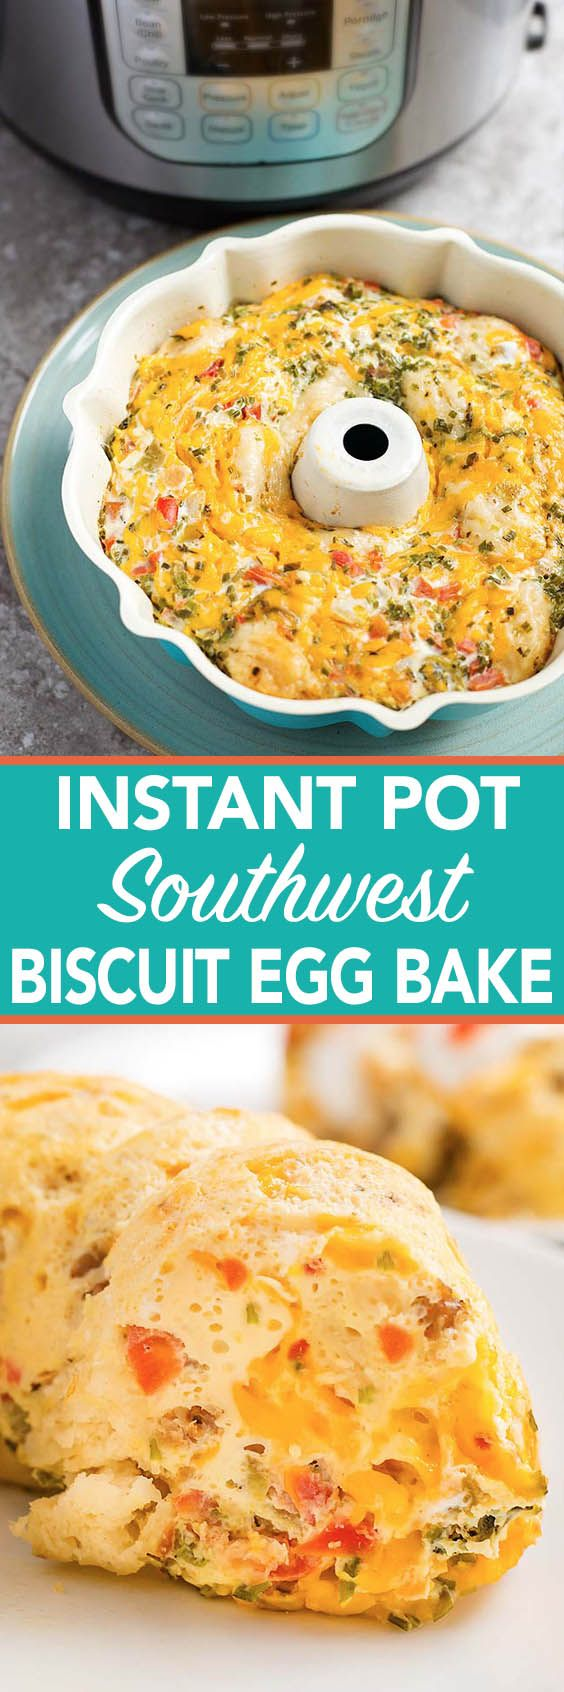 Instant pot southwest egg bake has salsa, cheese, and is a breakfast casserole you cook in your pressure cooker. simplyhappyfoodie.com #instantpotrecipes #instantpoteggbake #instantpoteggs